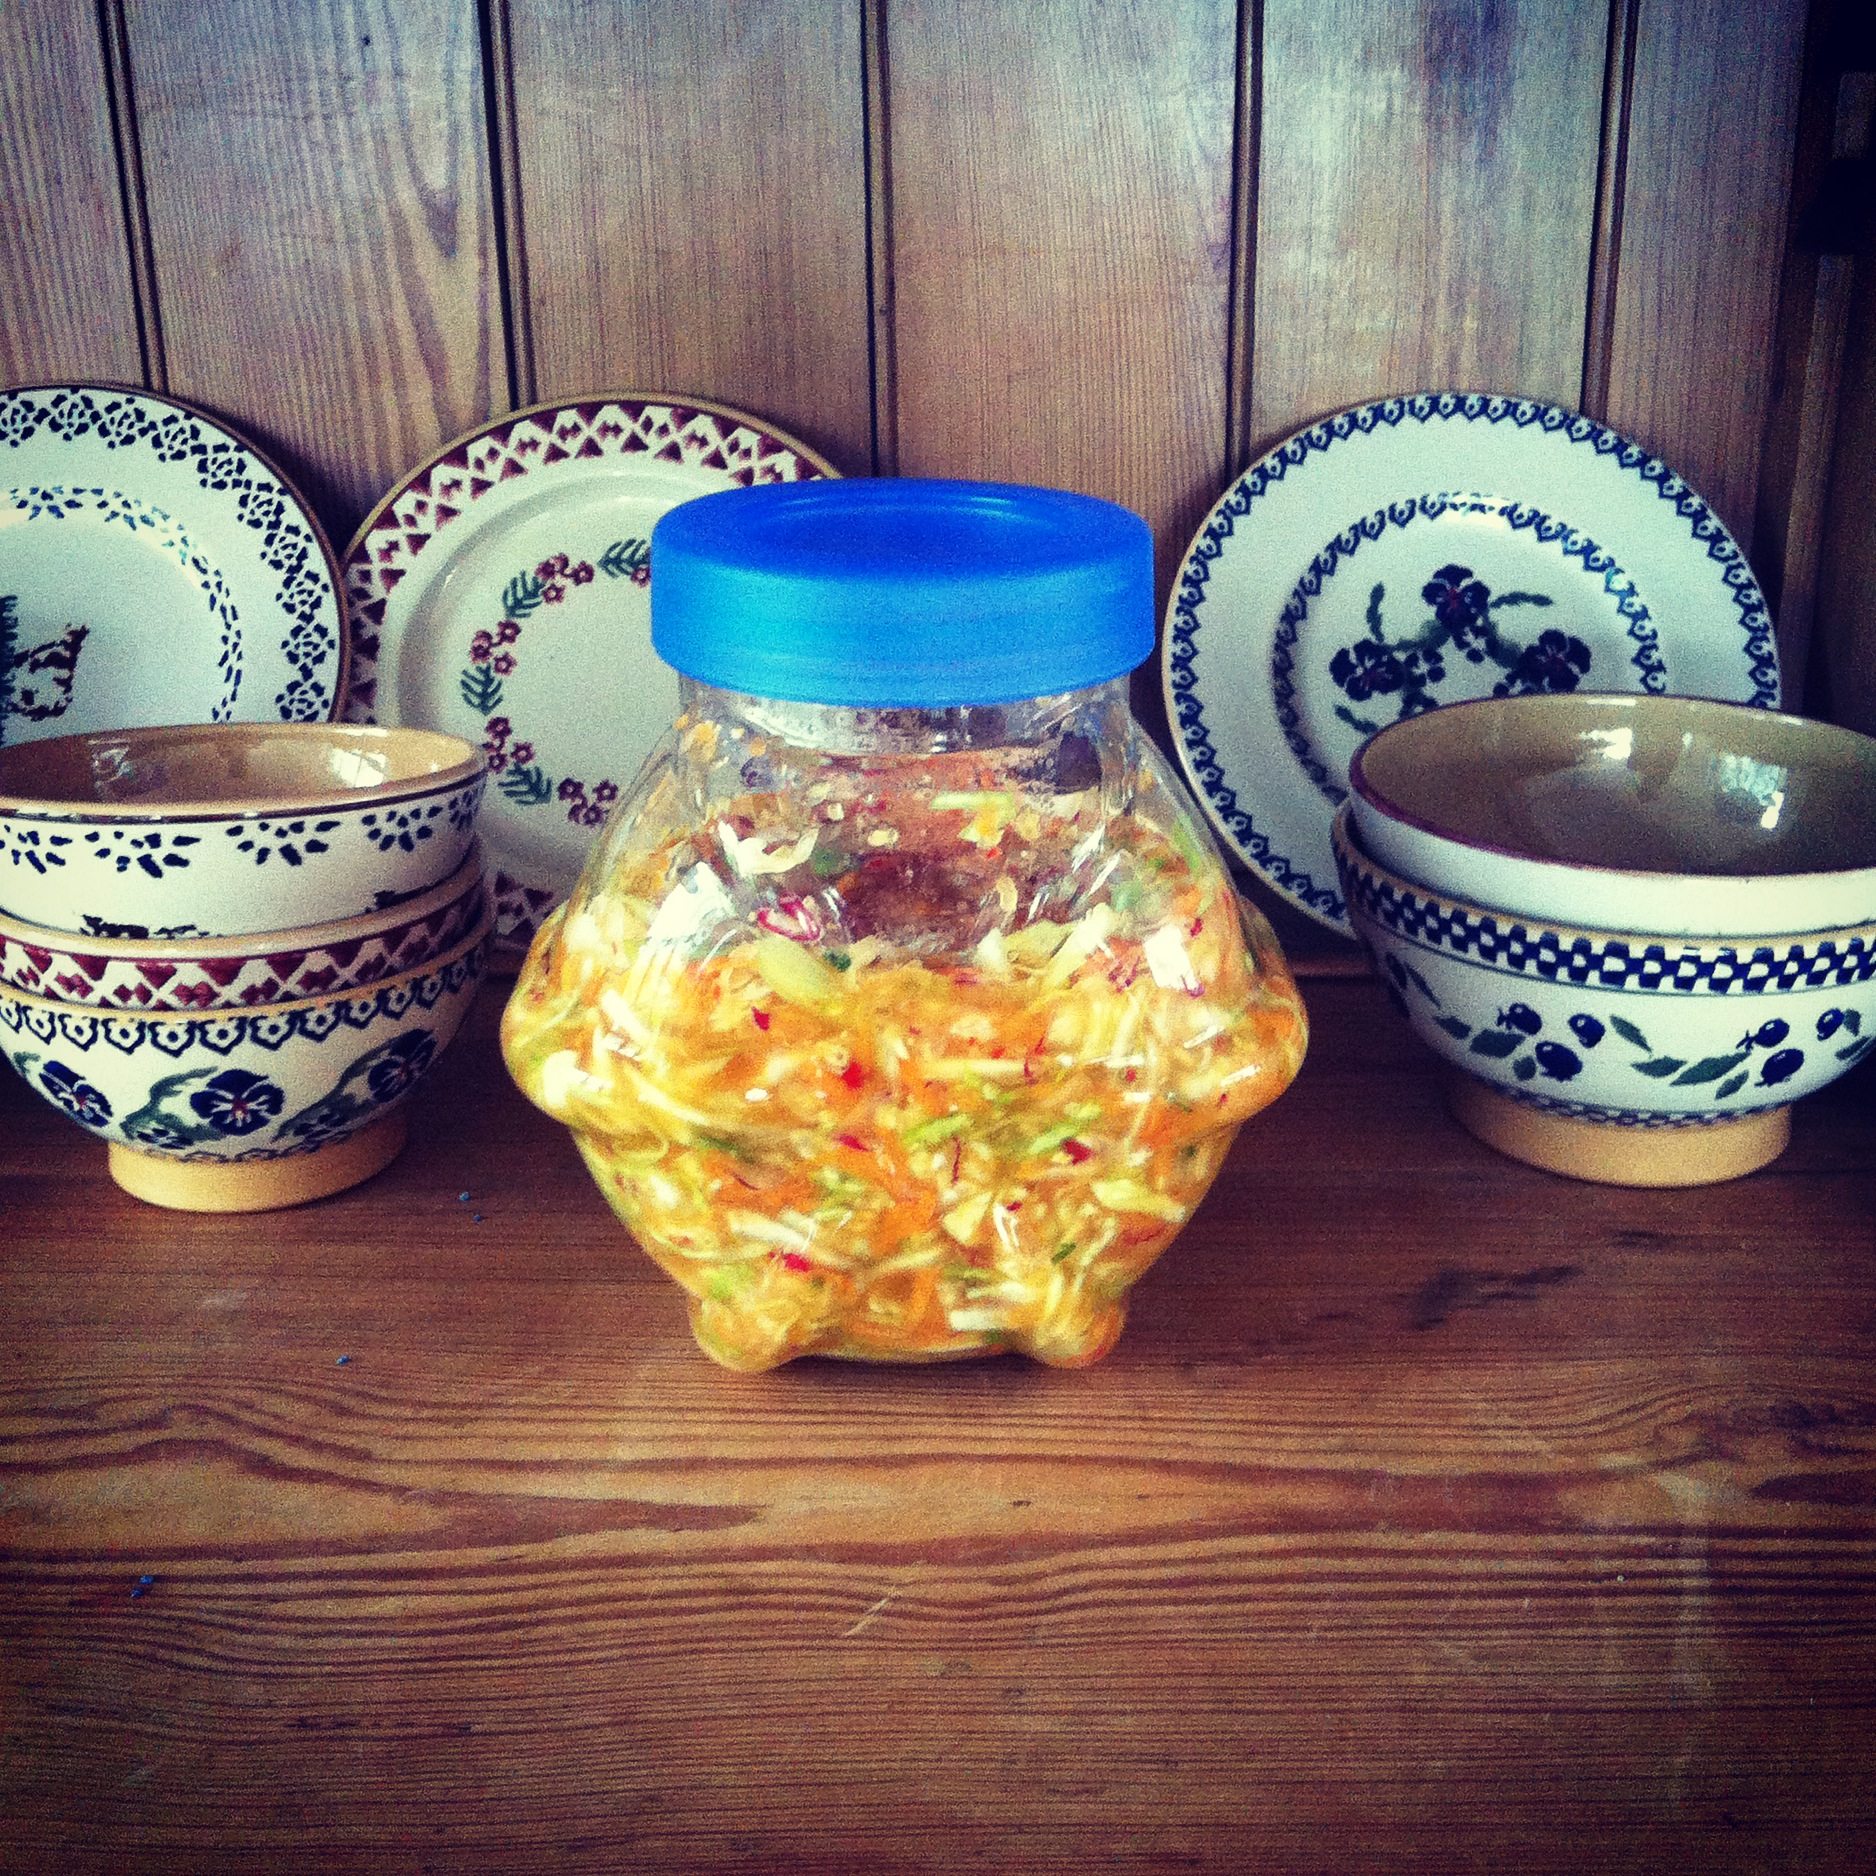 Our homemade kimchi